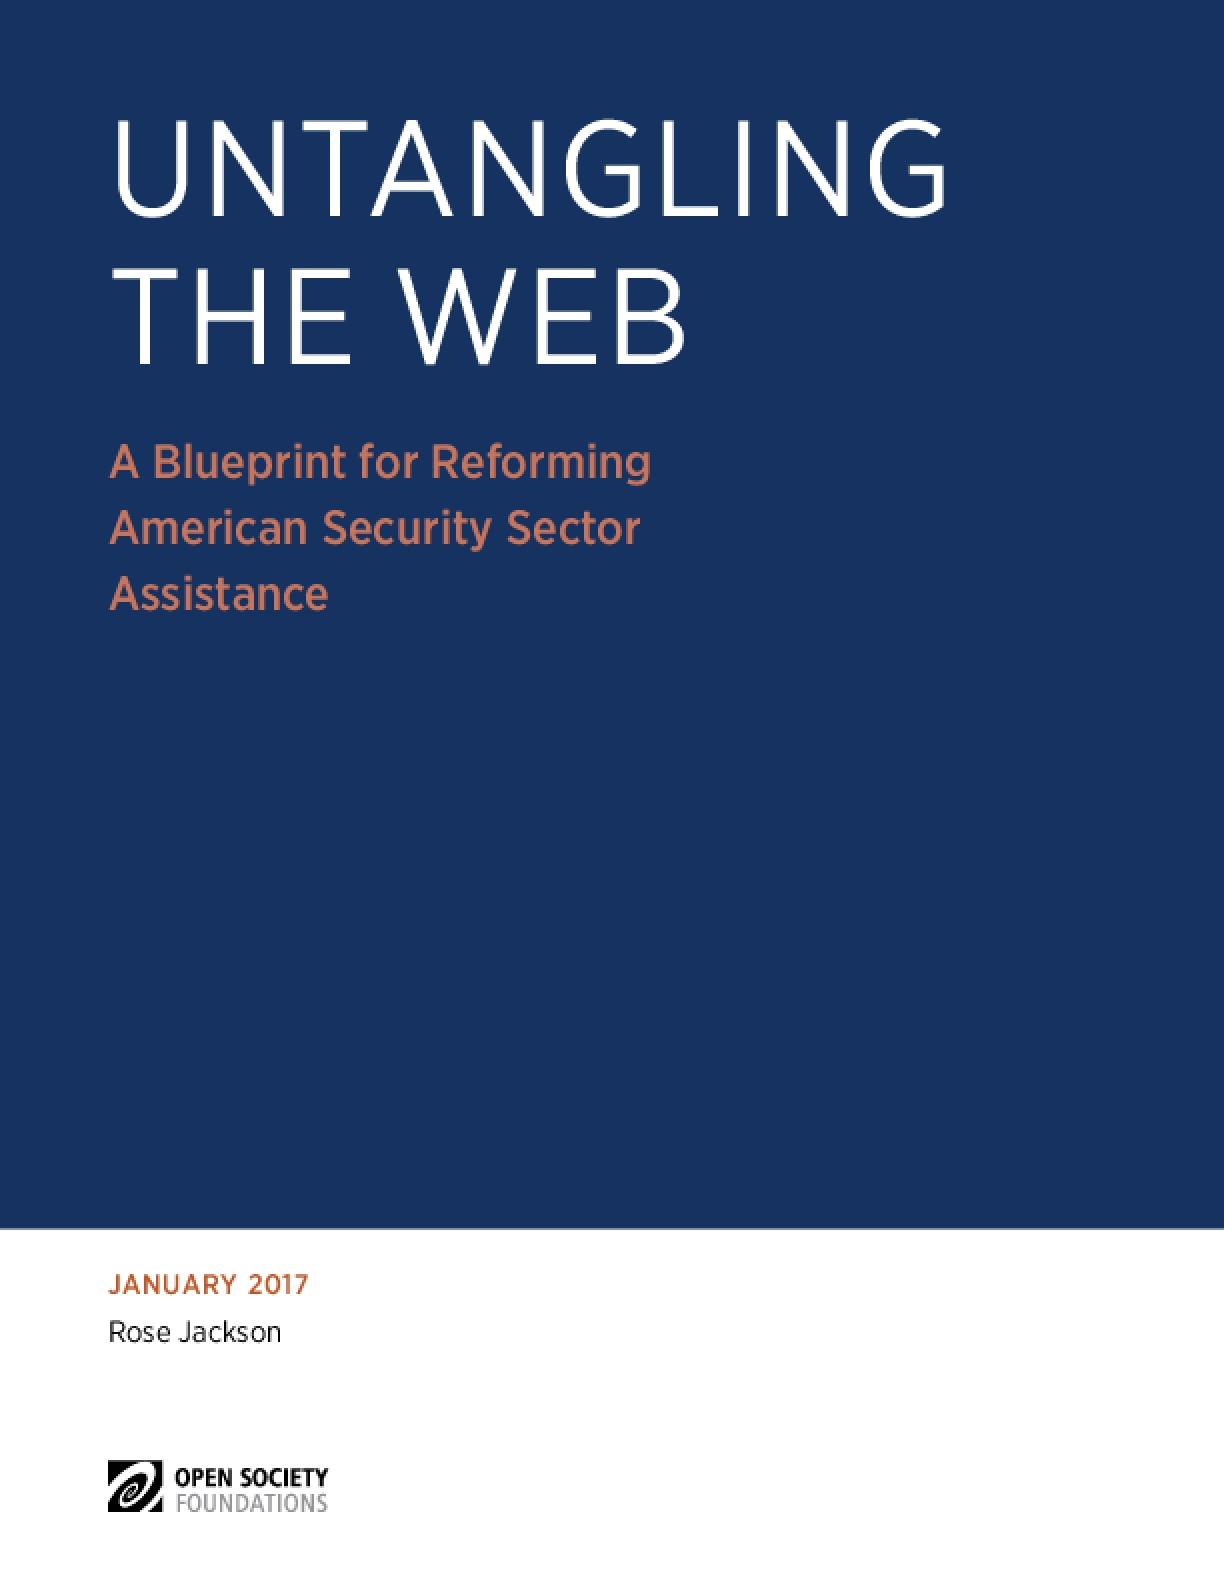 Untangling the Web: A Blueprint for Reforming American Security Sector Assistance